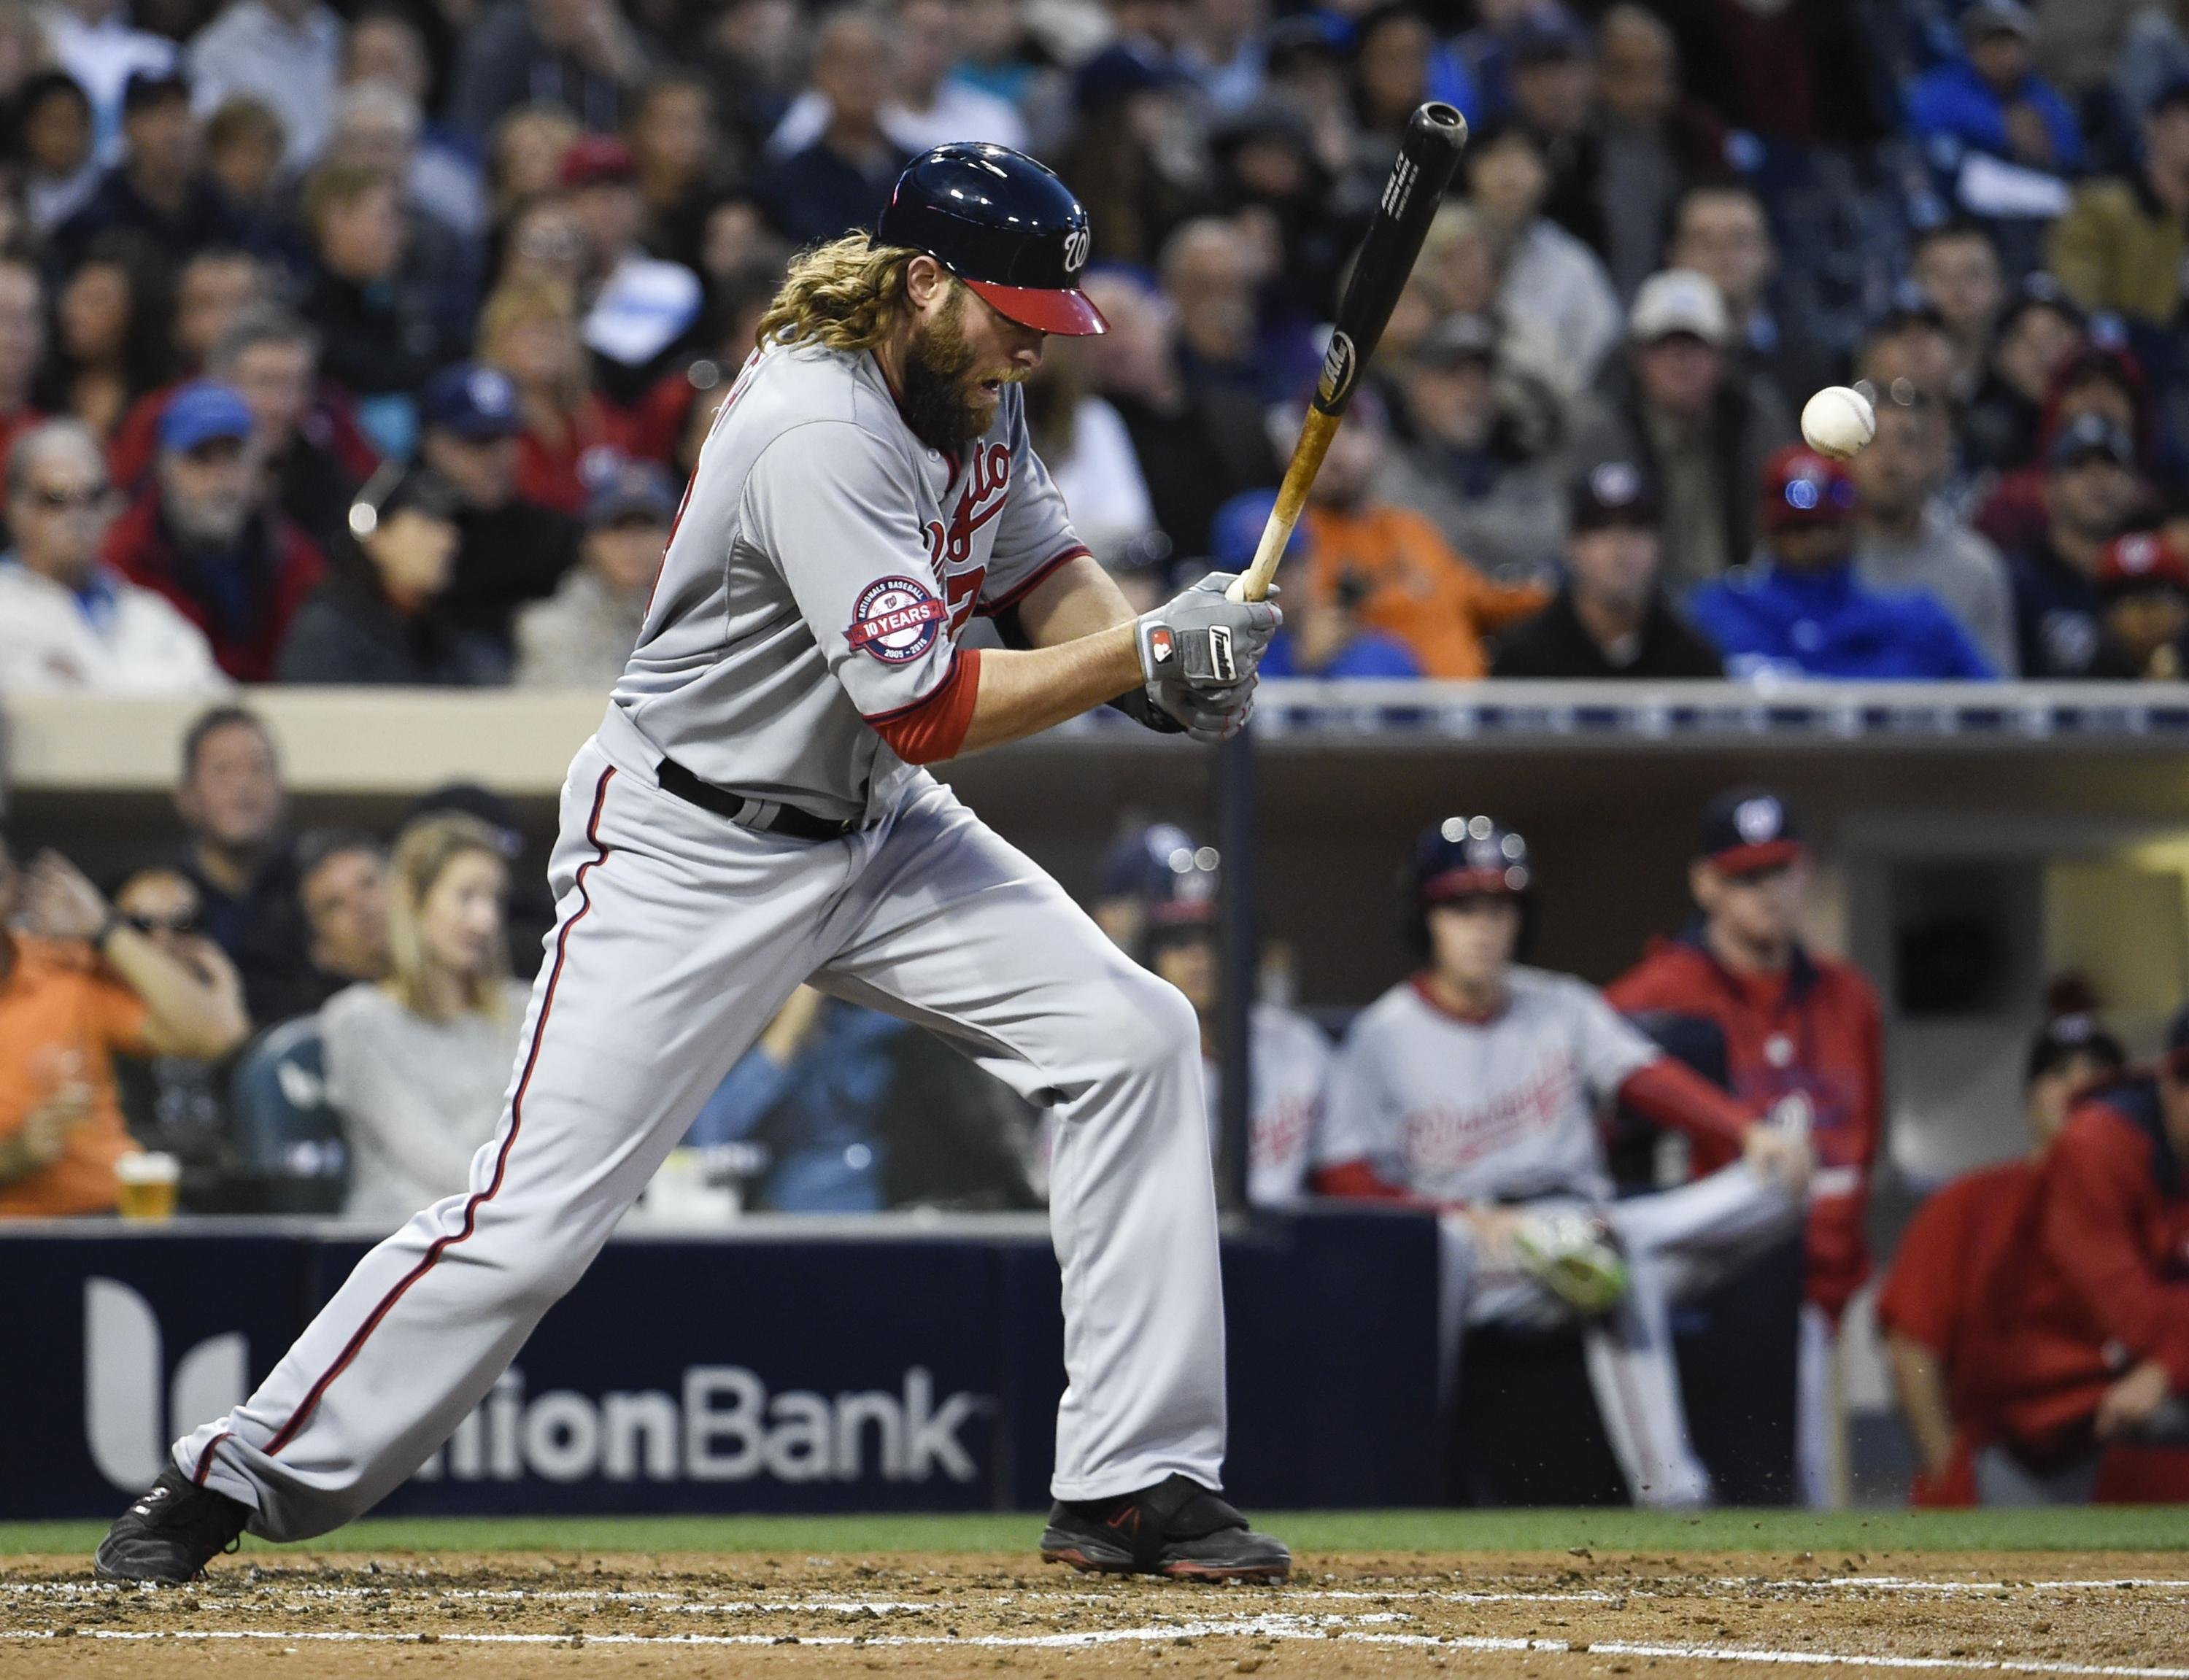 Report: Jayson Werth out until at least August due to wrist fractures